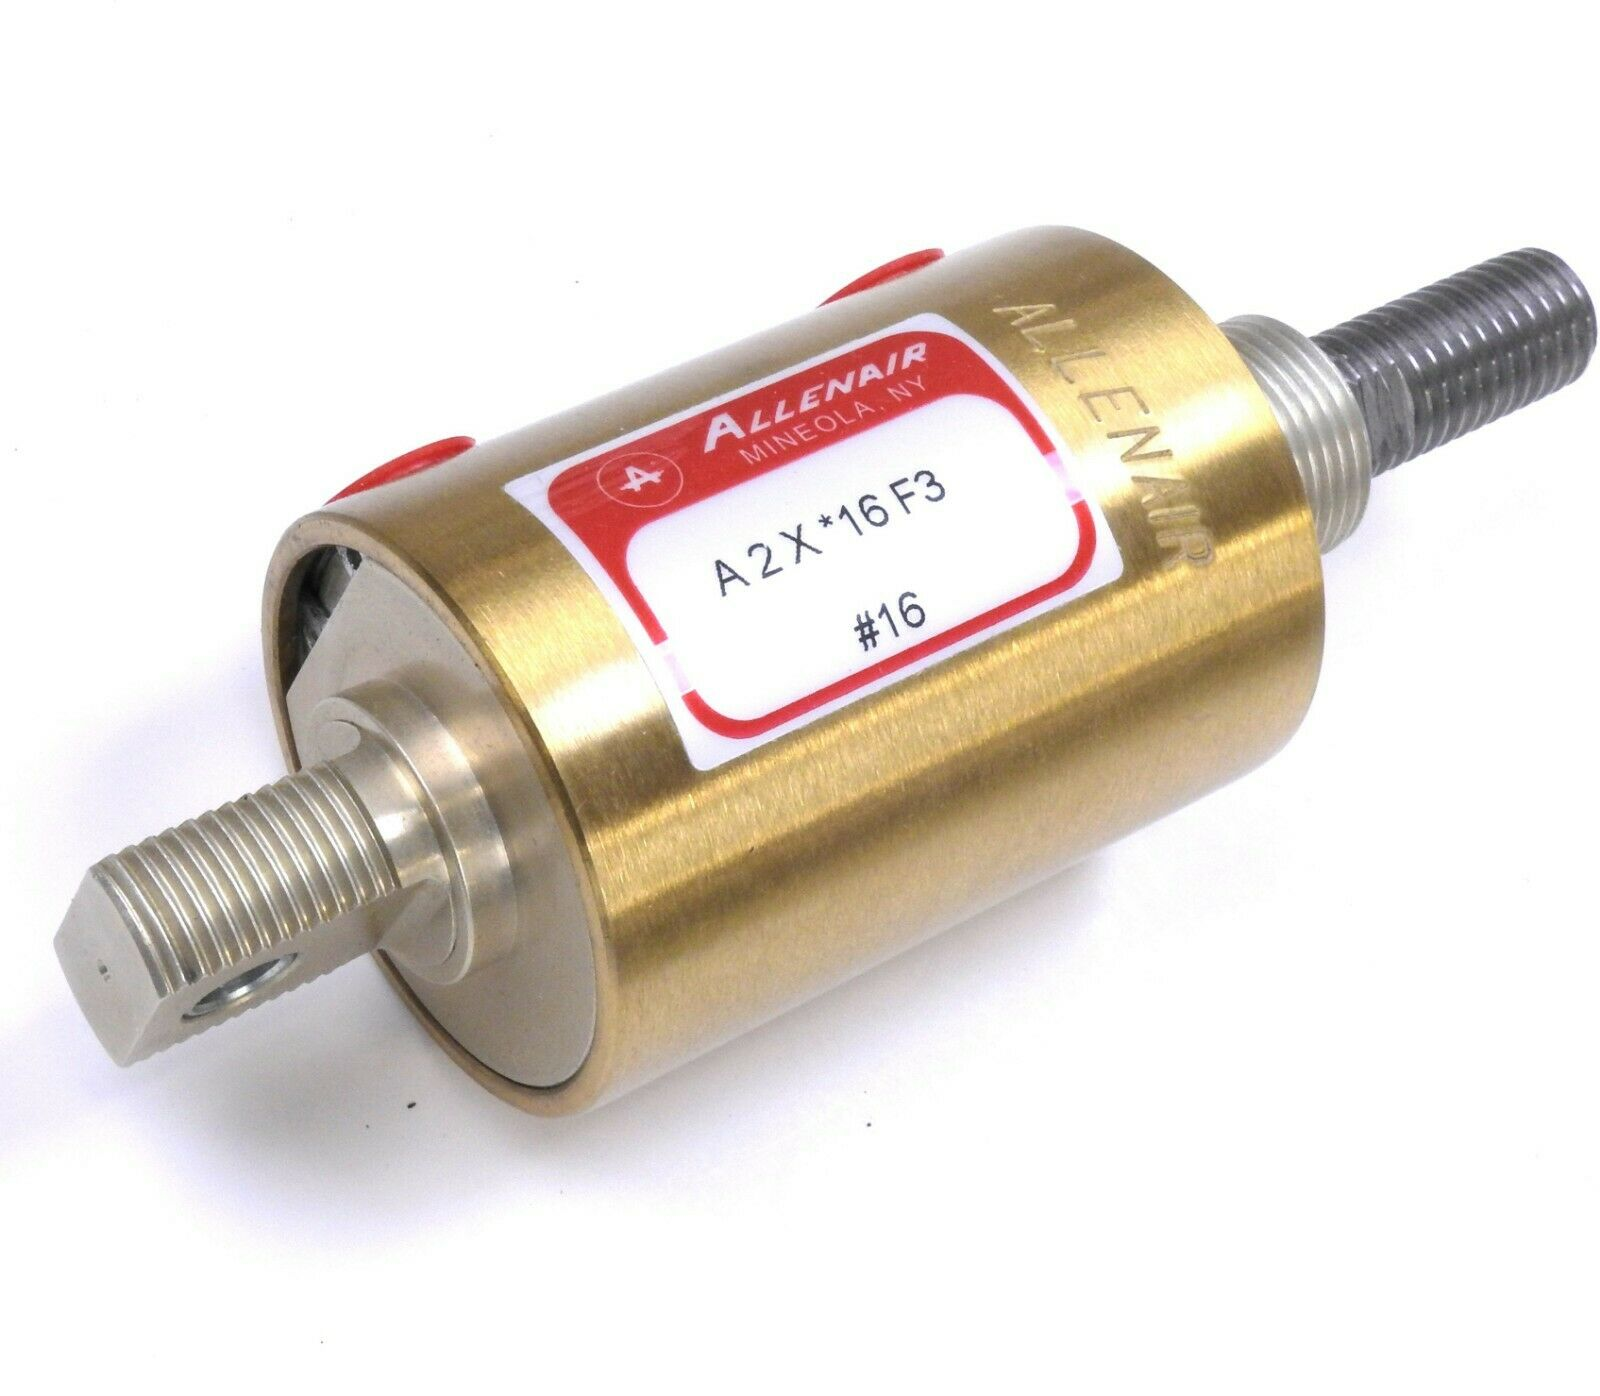 Allenair A 2 X 16 F3 Double Acting Pneumatic Cylinder